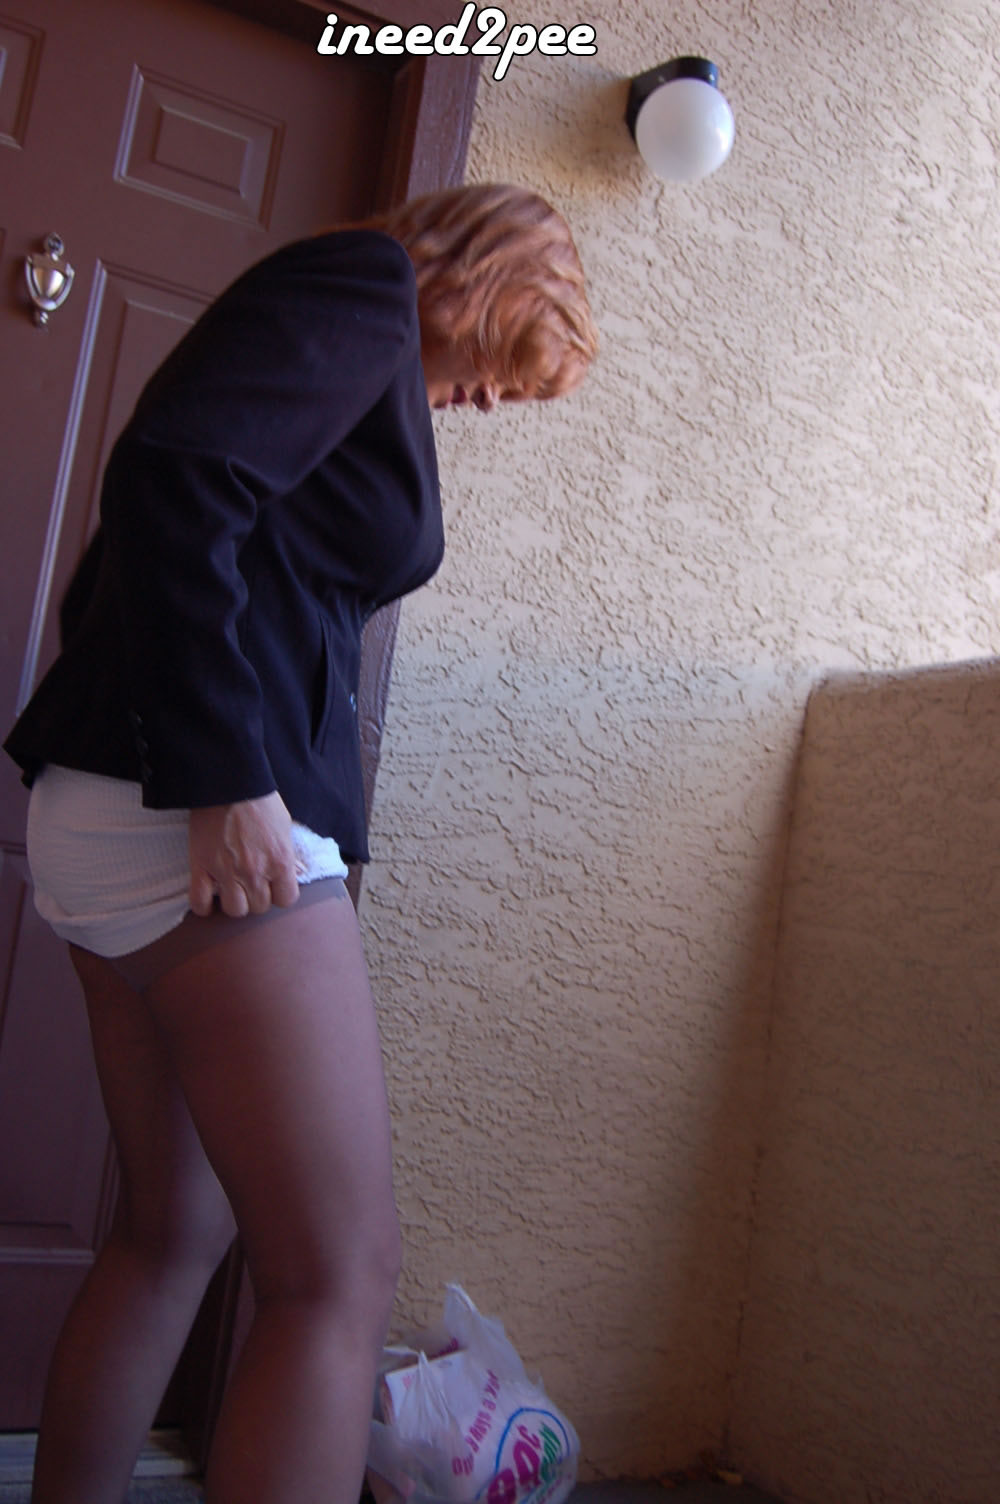 wetting her pants female desperation ineed2pee